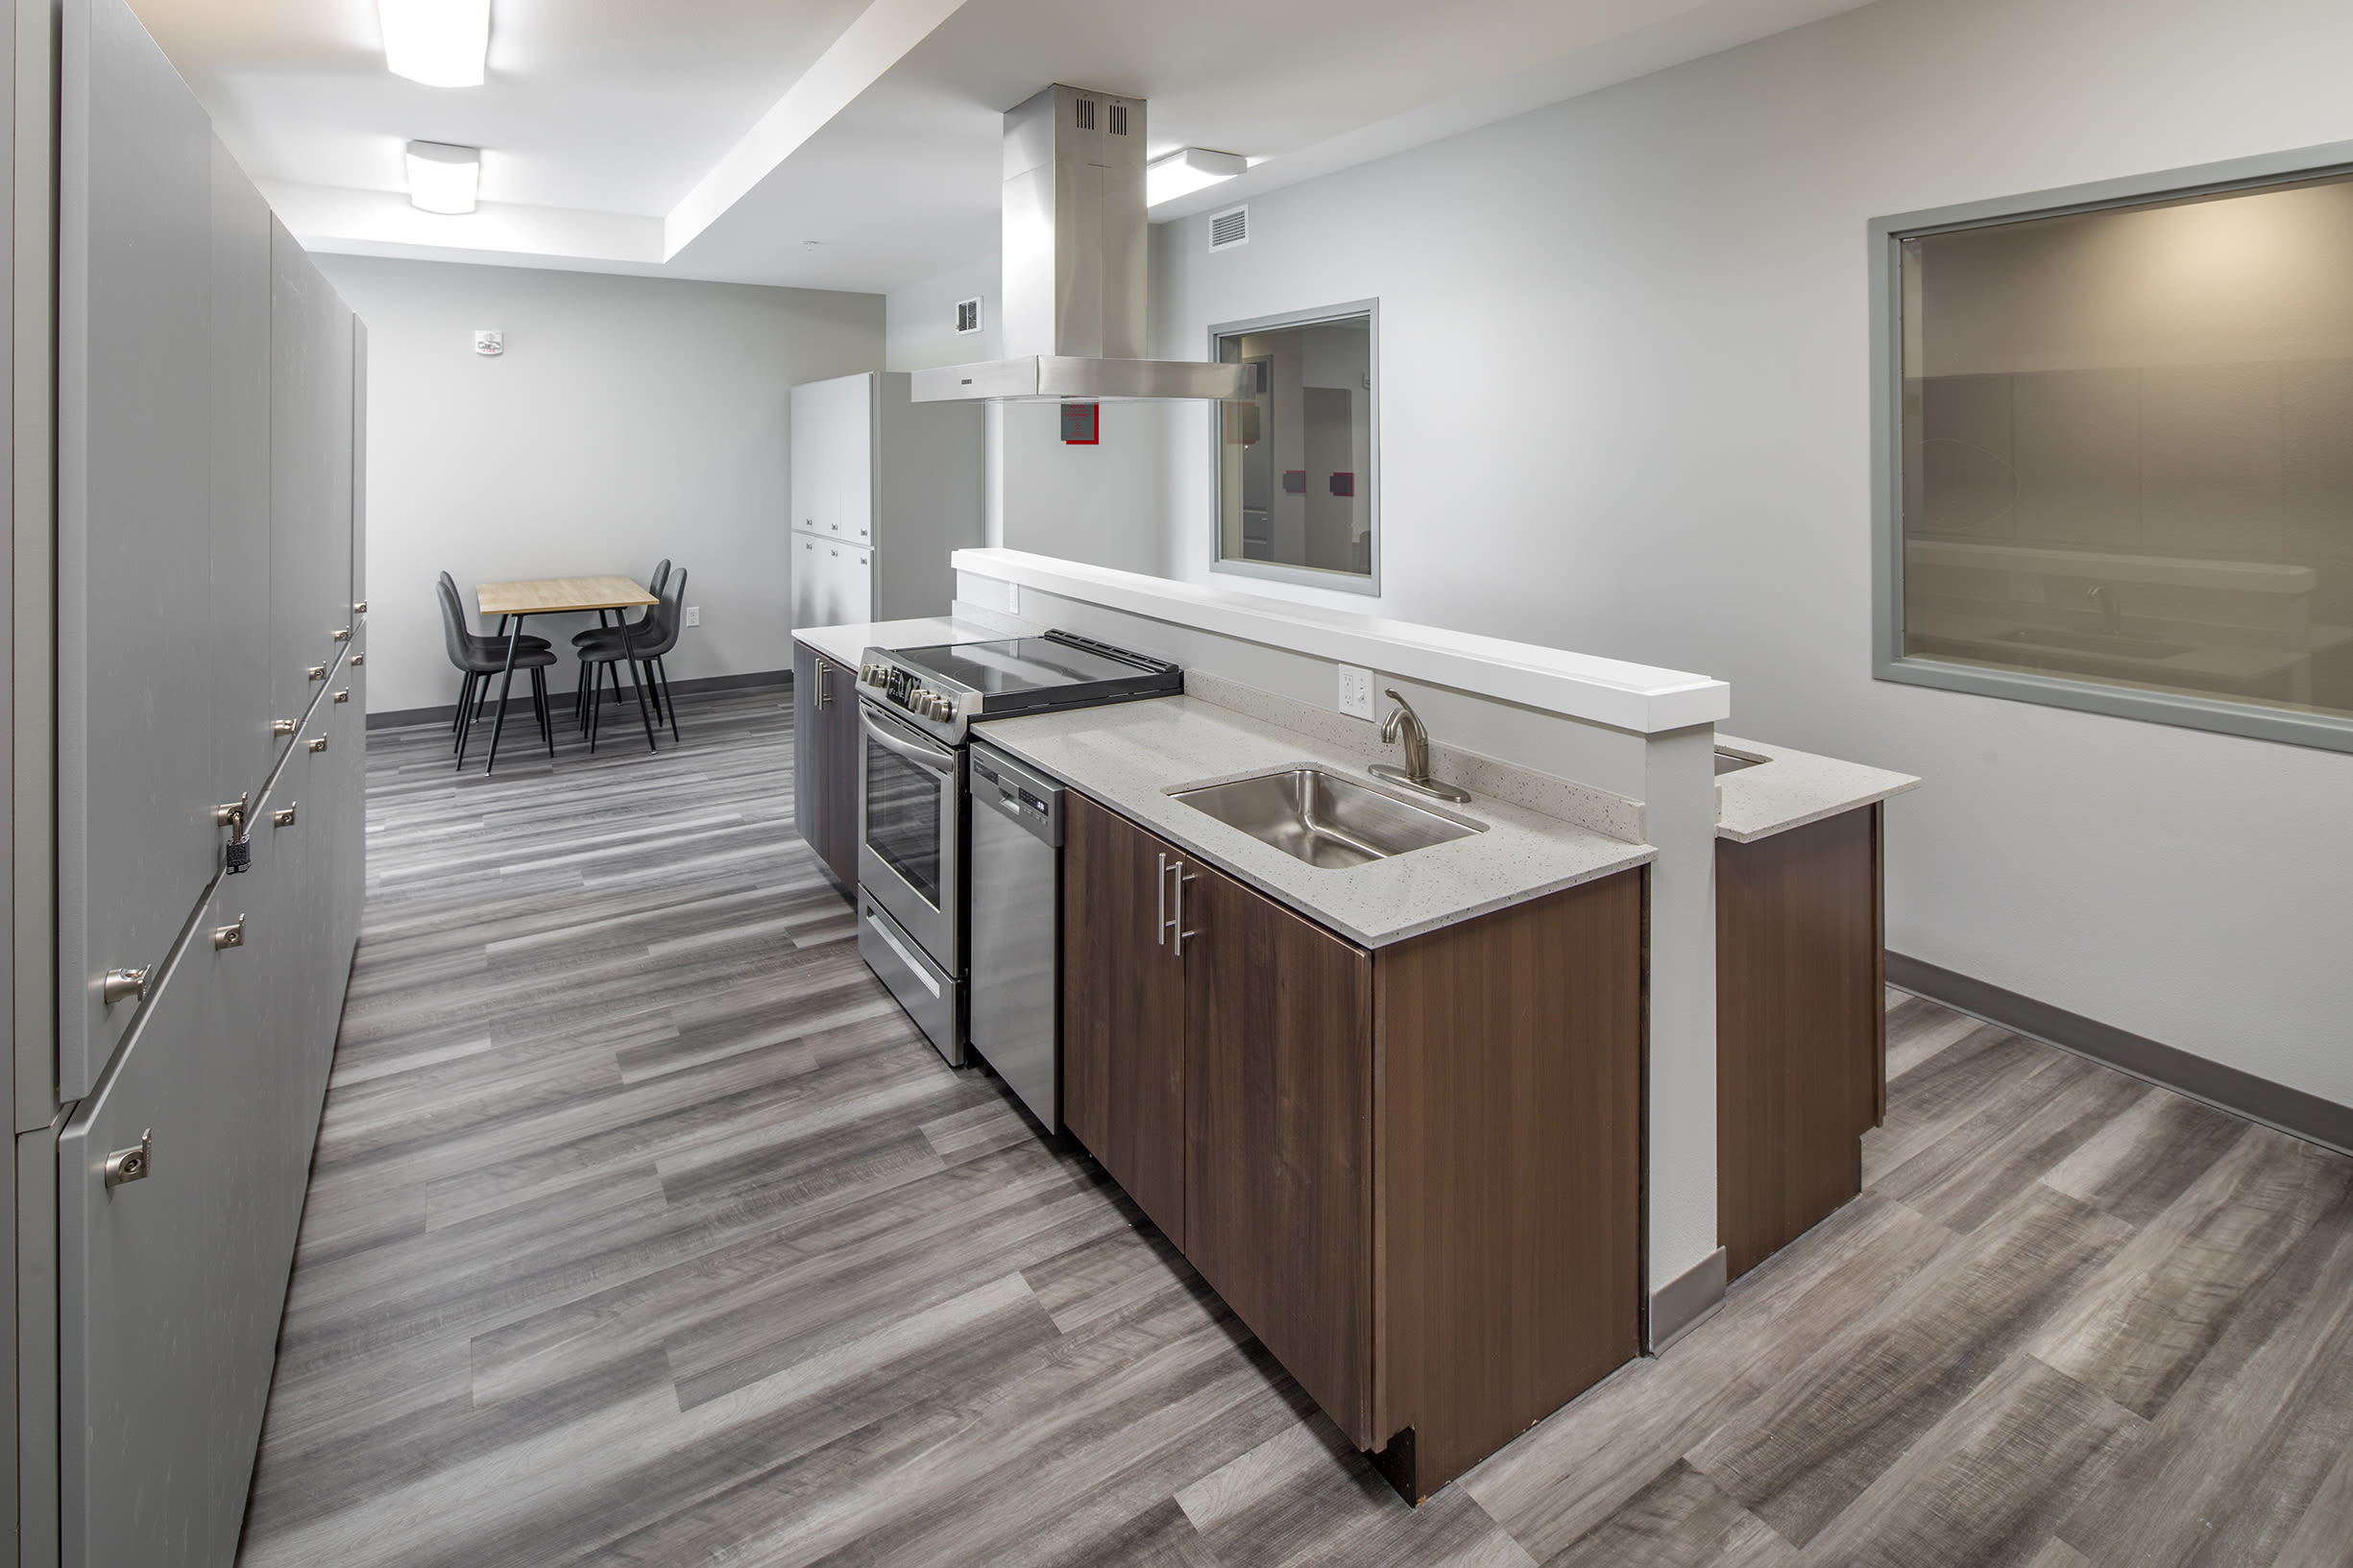 A community kitchen at Ascend in Portland, OR